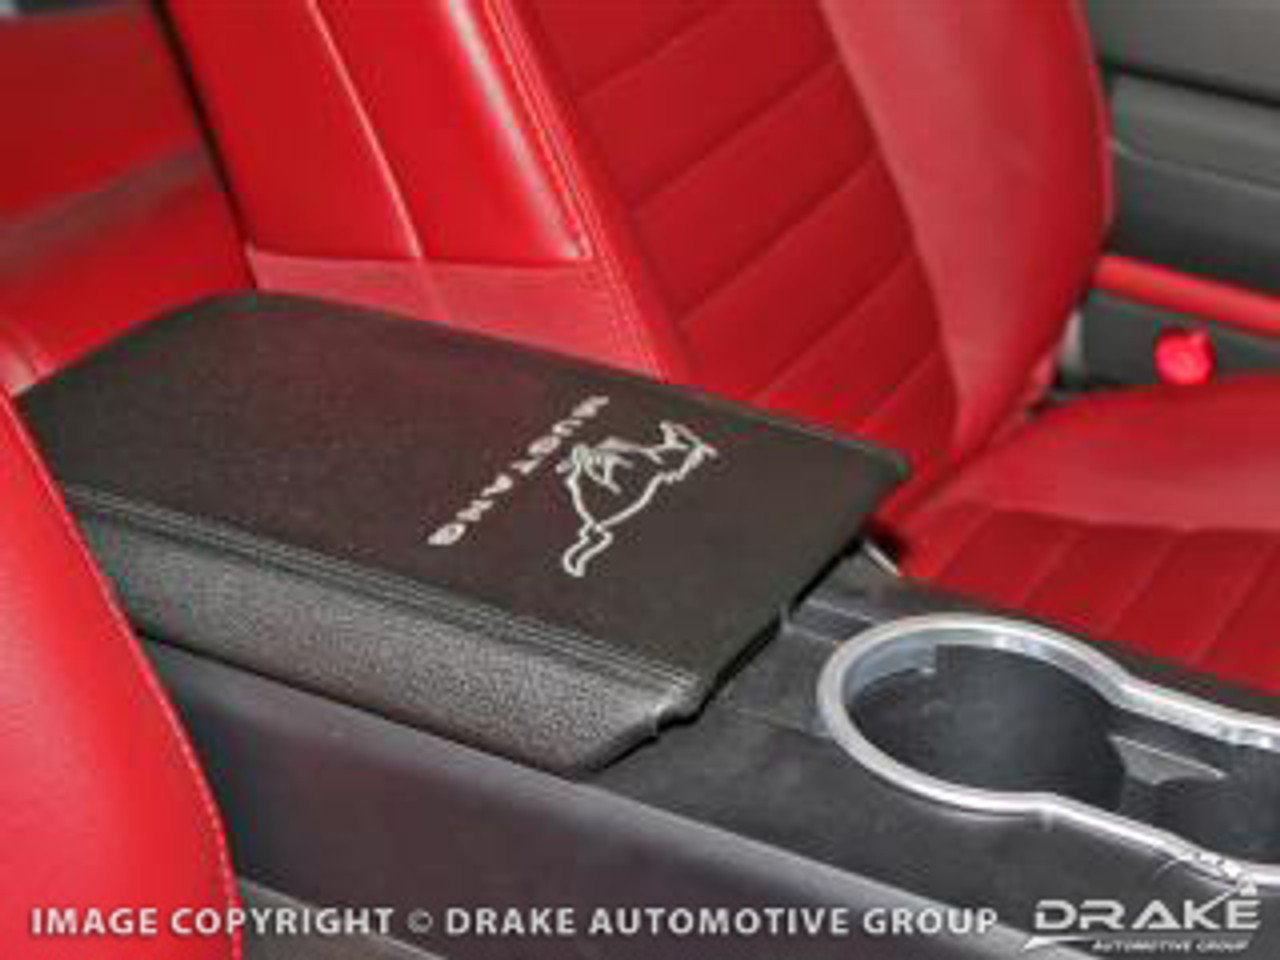 2005-2009 Ford Mustang arm rest cover w/ horse